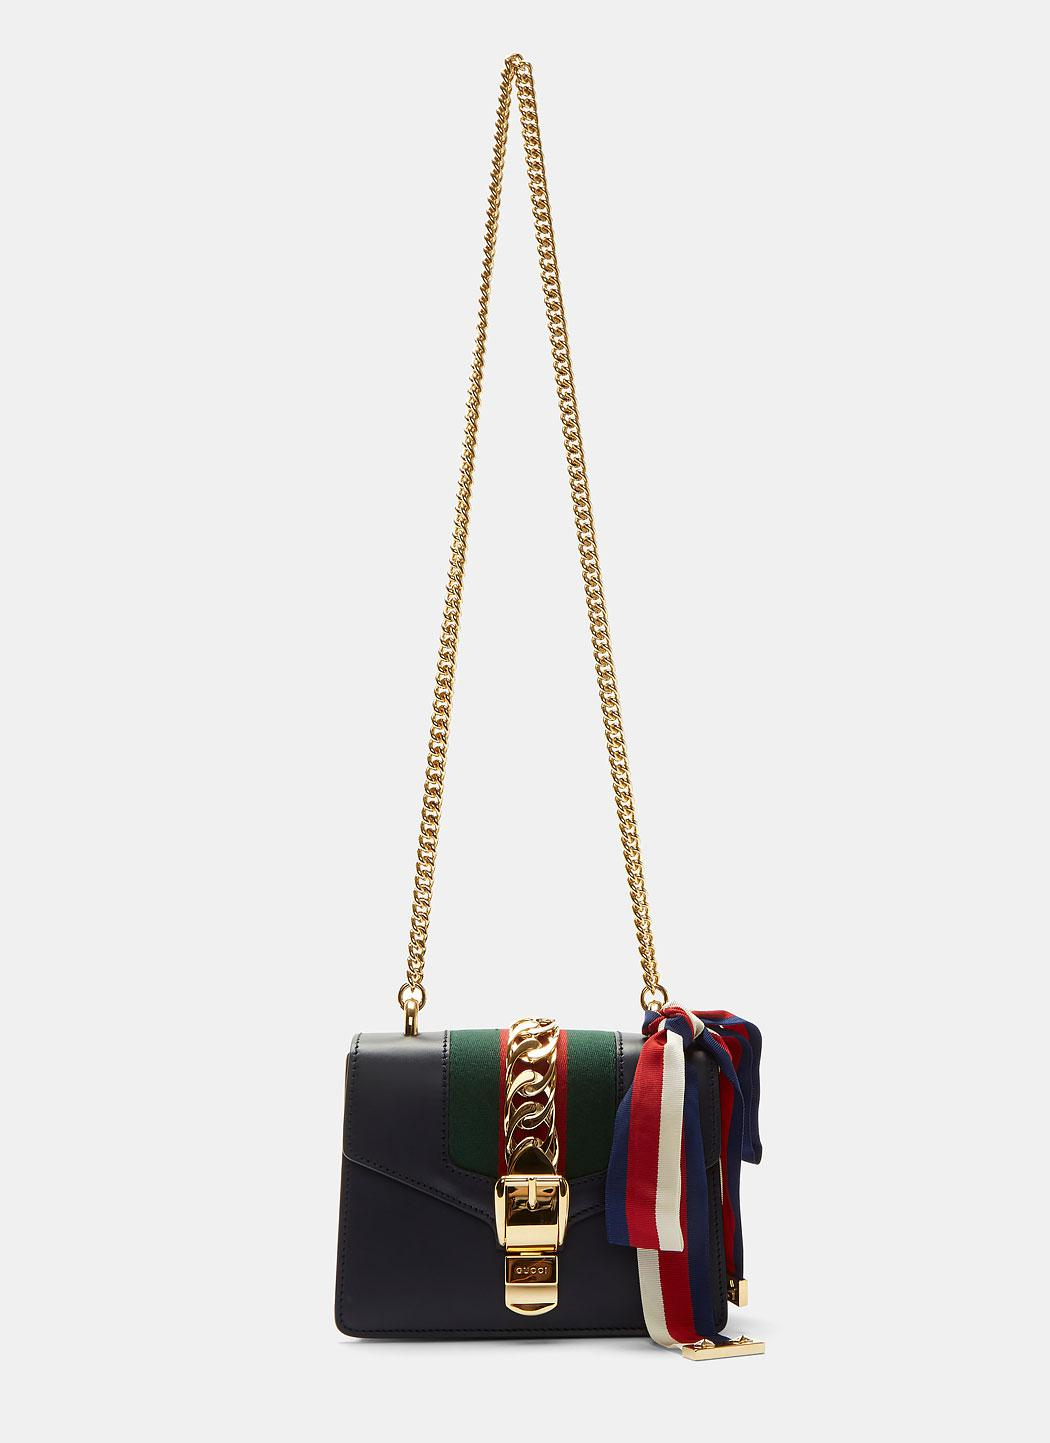 ad6dc4f77159c Gucci Sylvie Chain Mini Shoulder Bag In Navy in Blue - Lyst